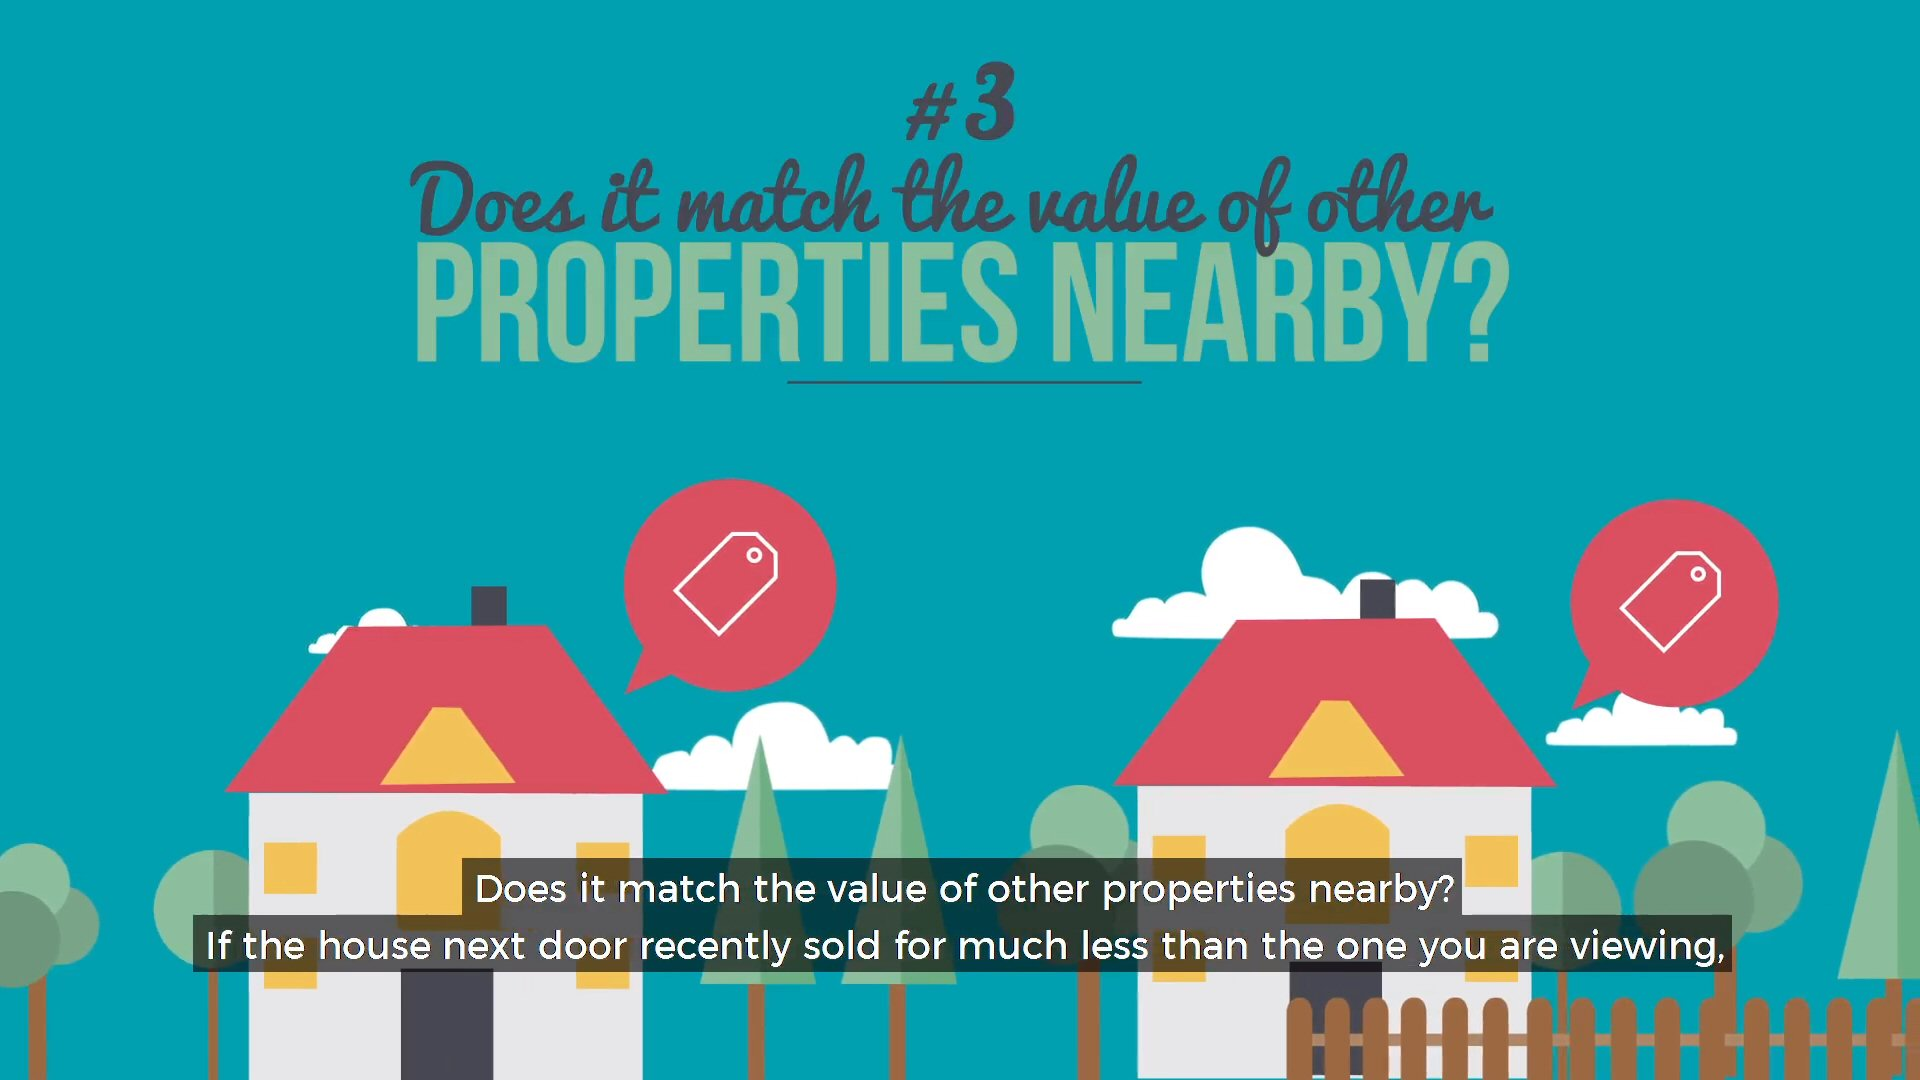 Video: How to spot an overpriced home